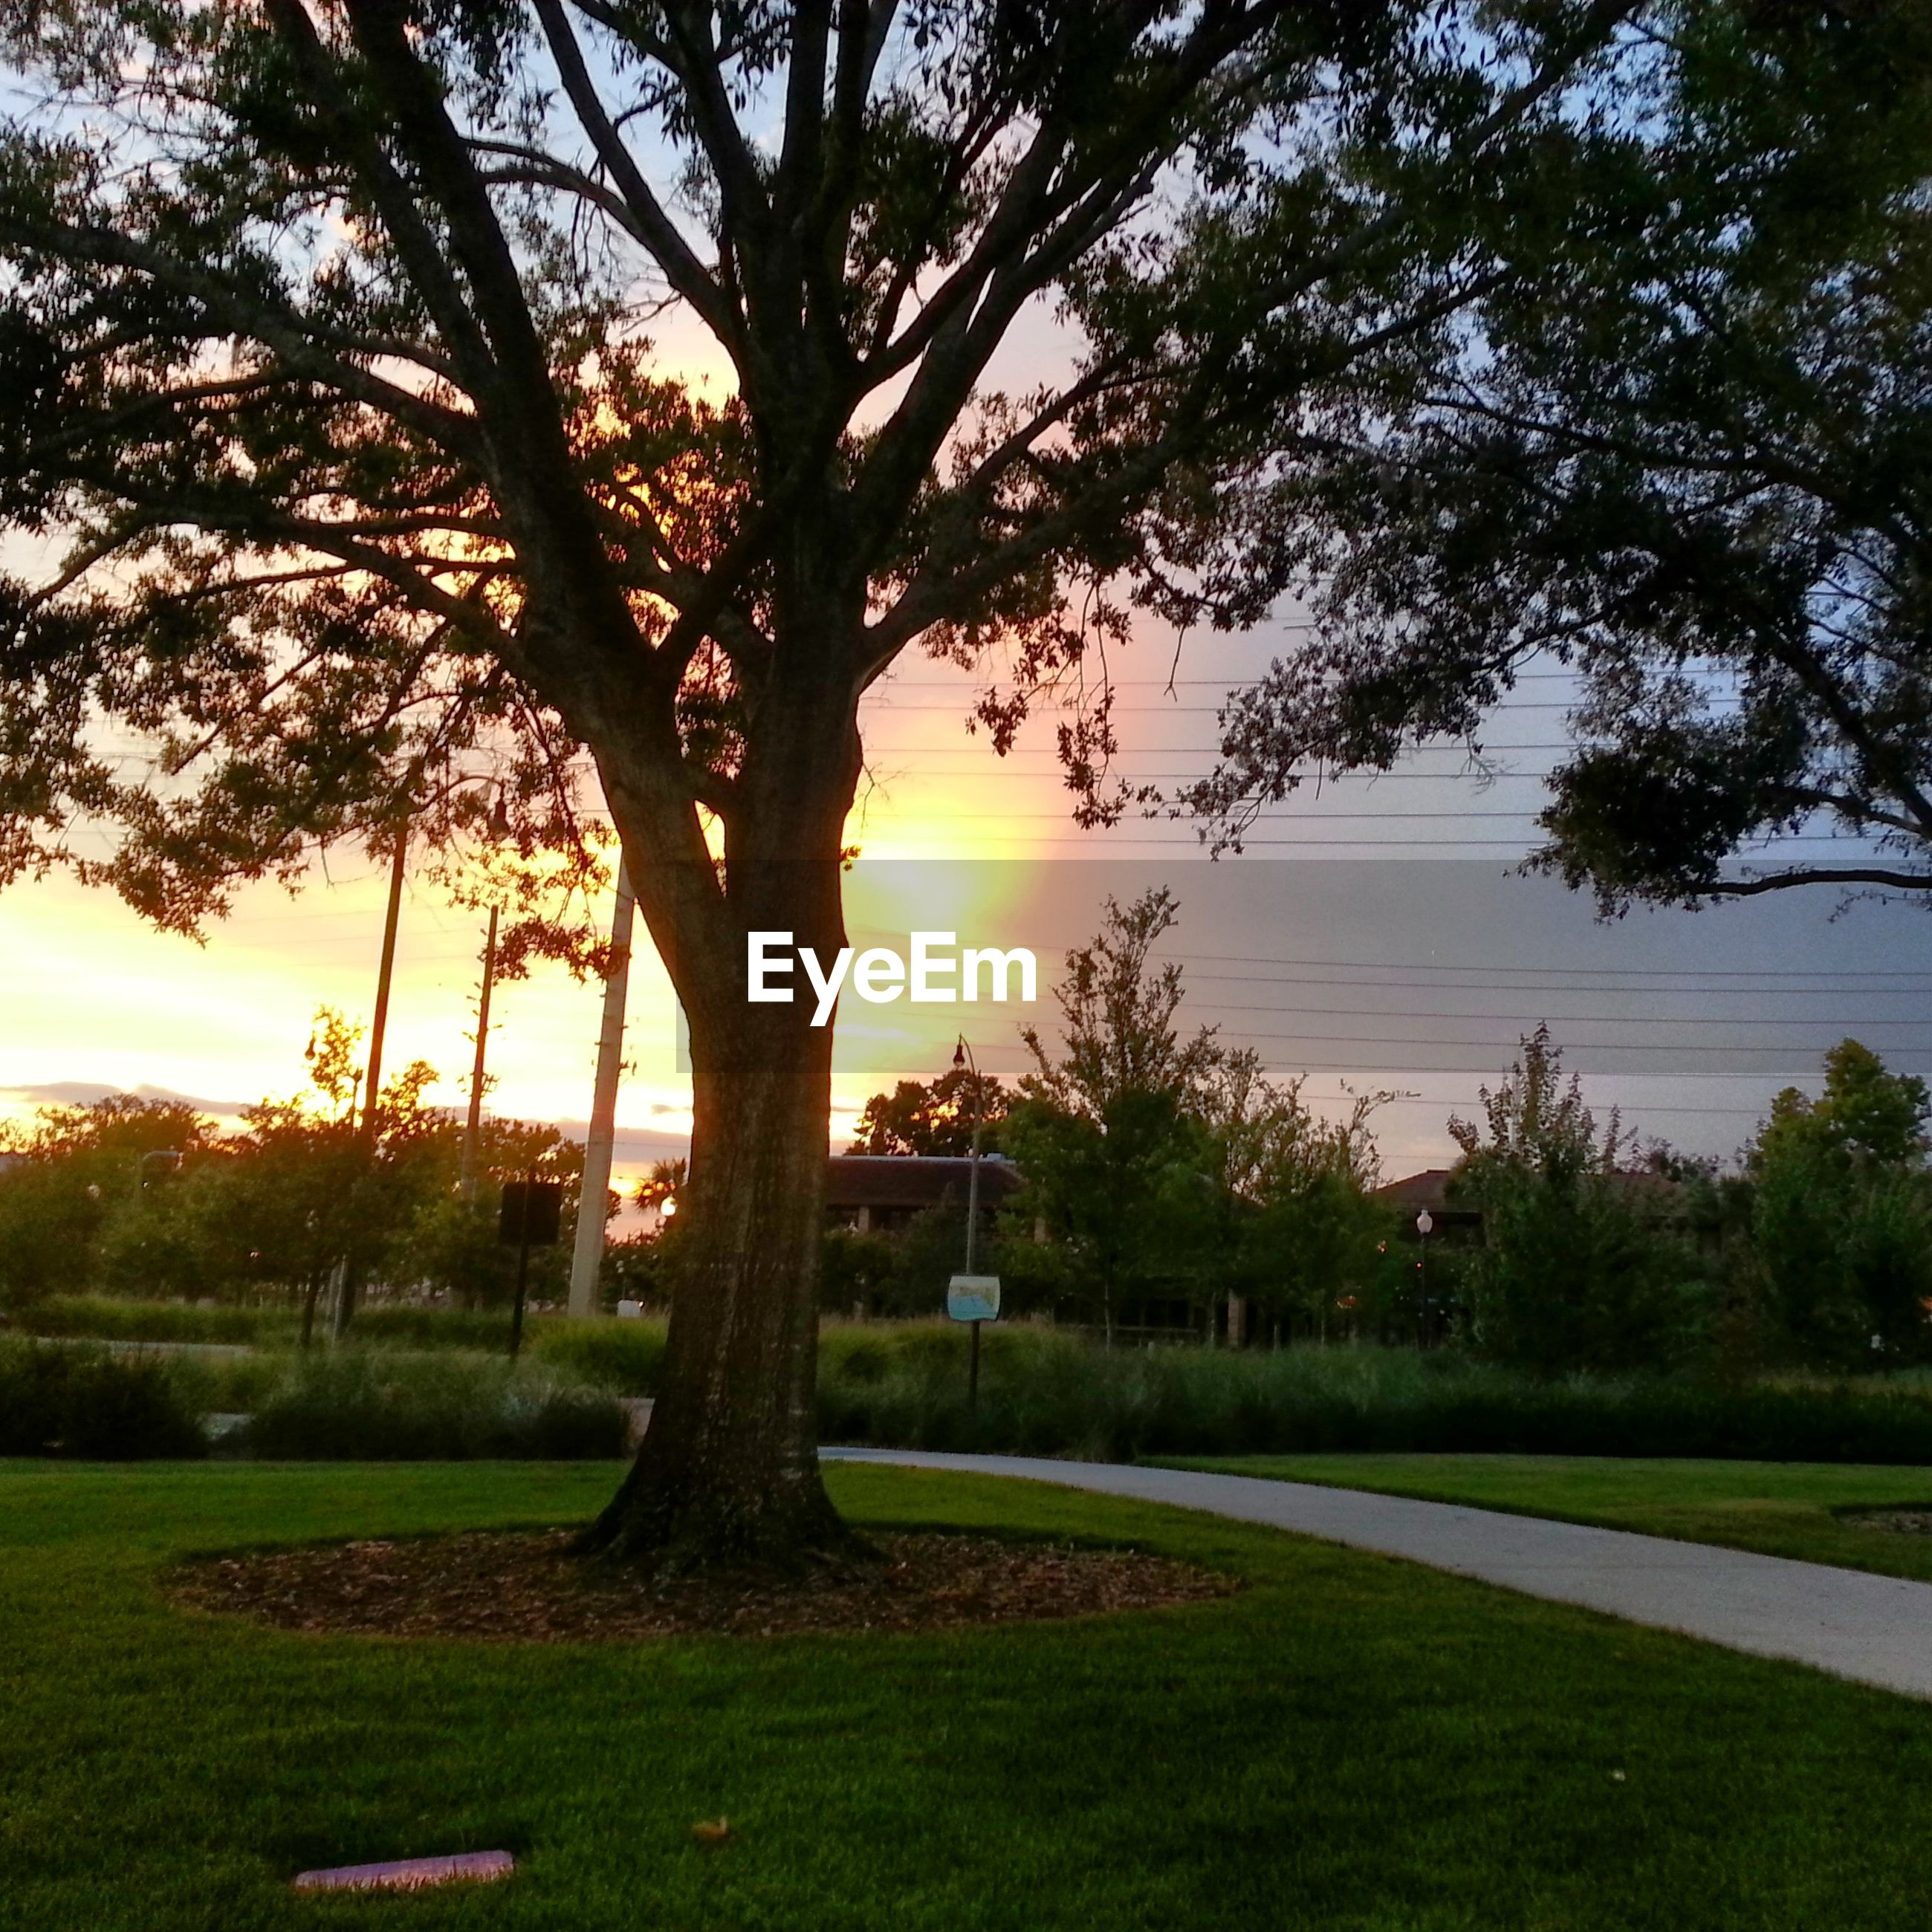 tree, grass, sunset, tranquility, tranquil scene, sun, scenics, beauty in nature, sky, sunlight, nature, landscape, field, growth, tree trunk, green color, idyllic, park - man made space, sunbeam, grassy